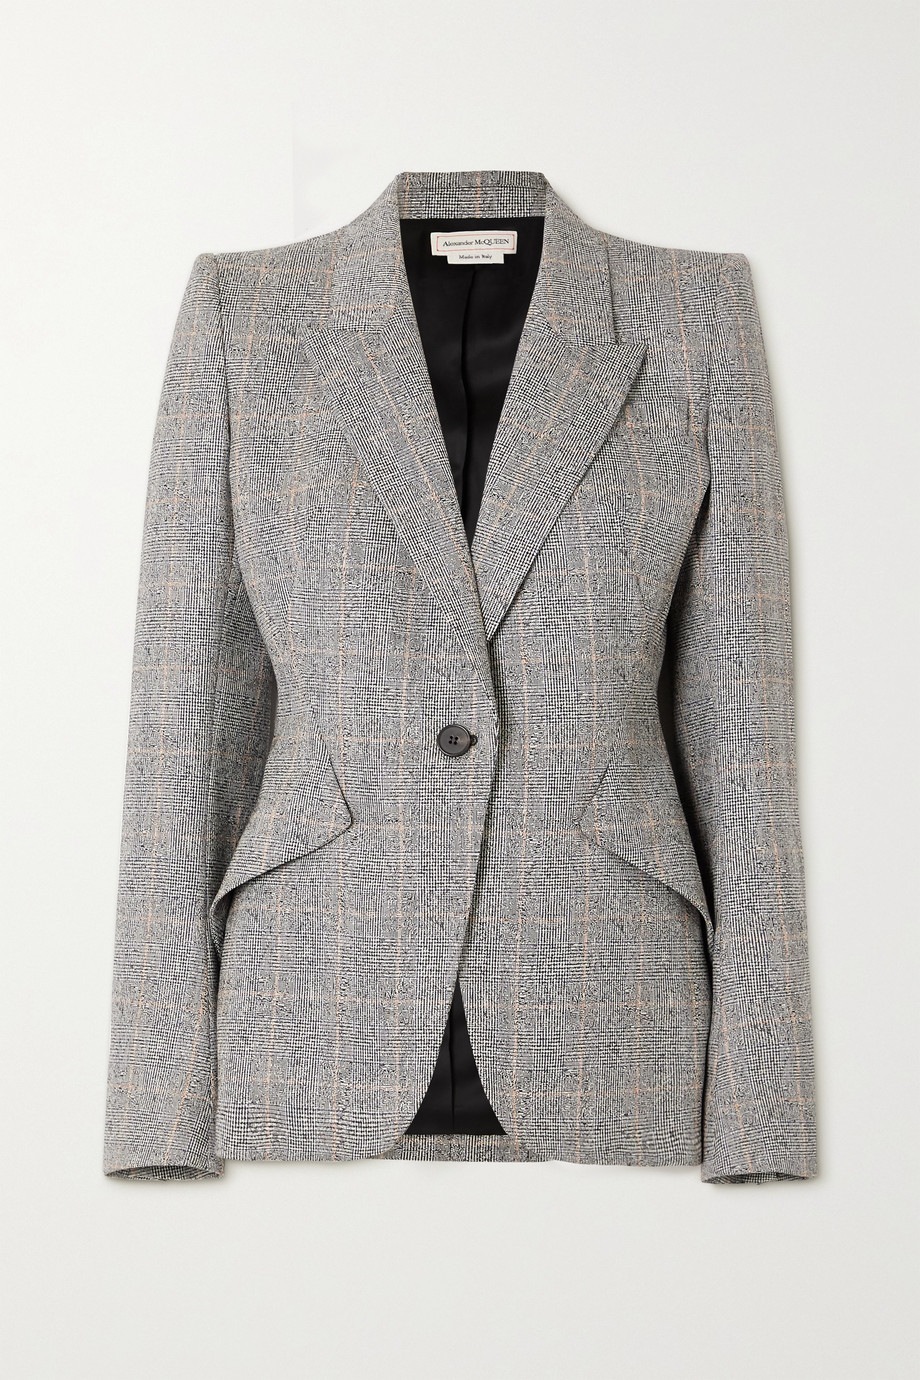 Alexander McQueen Prince of Wales checked wool-blend blazer